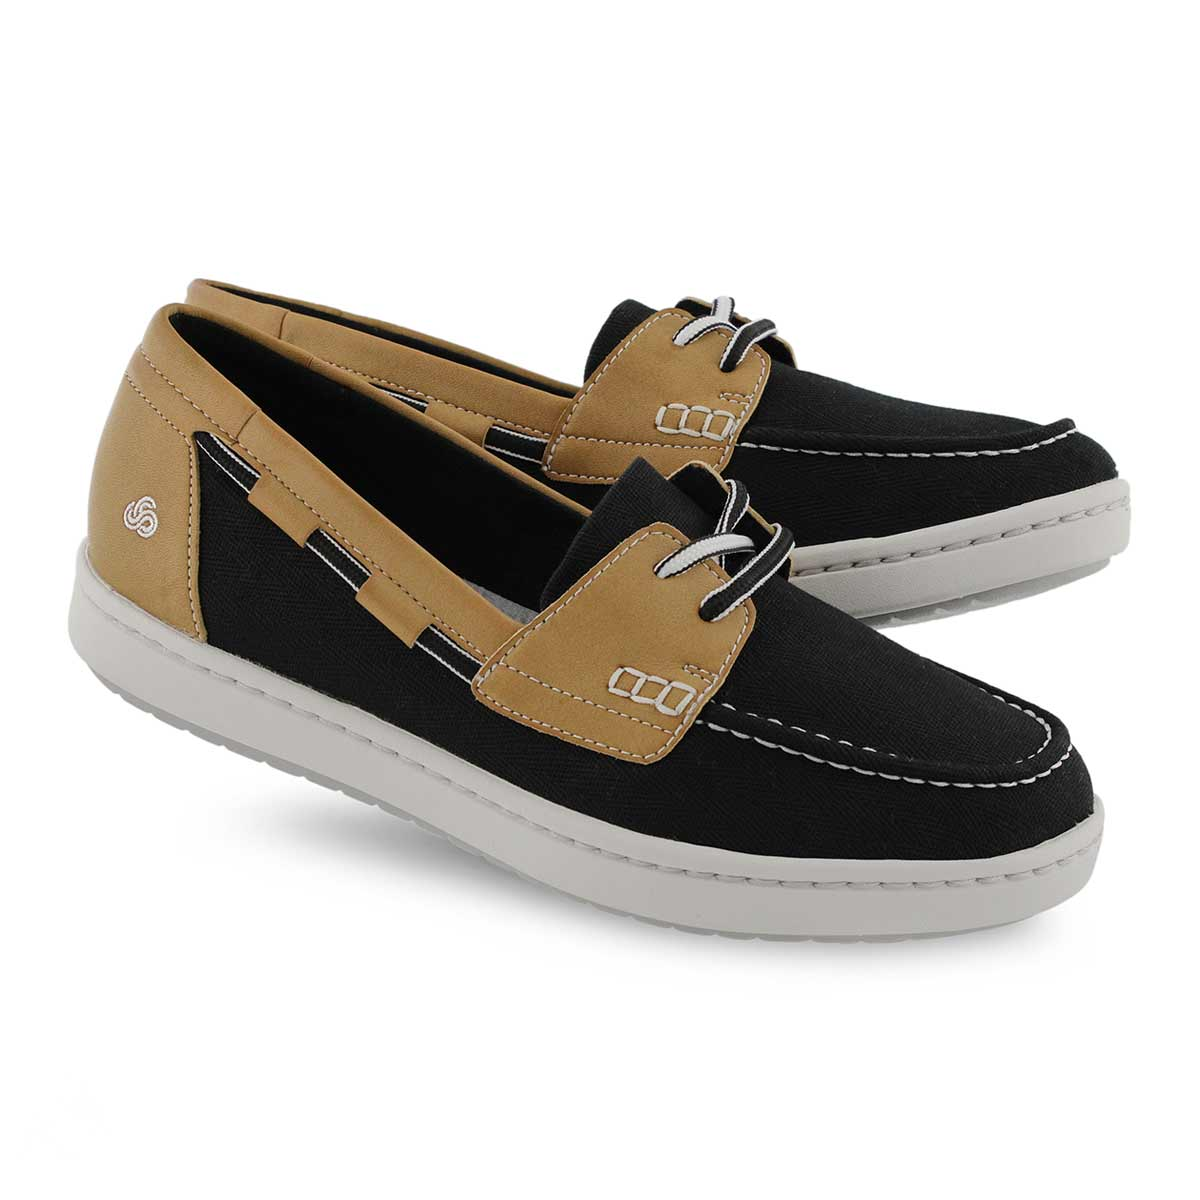 Lds Step Glow Lite black slip on shoe